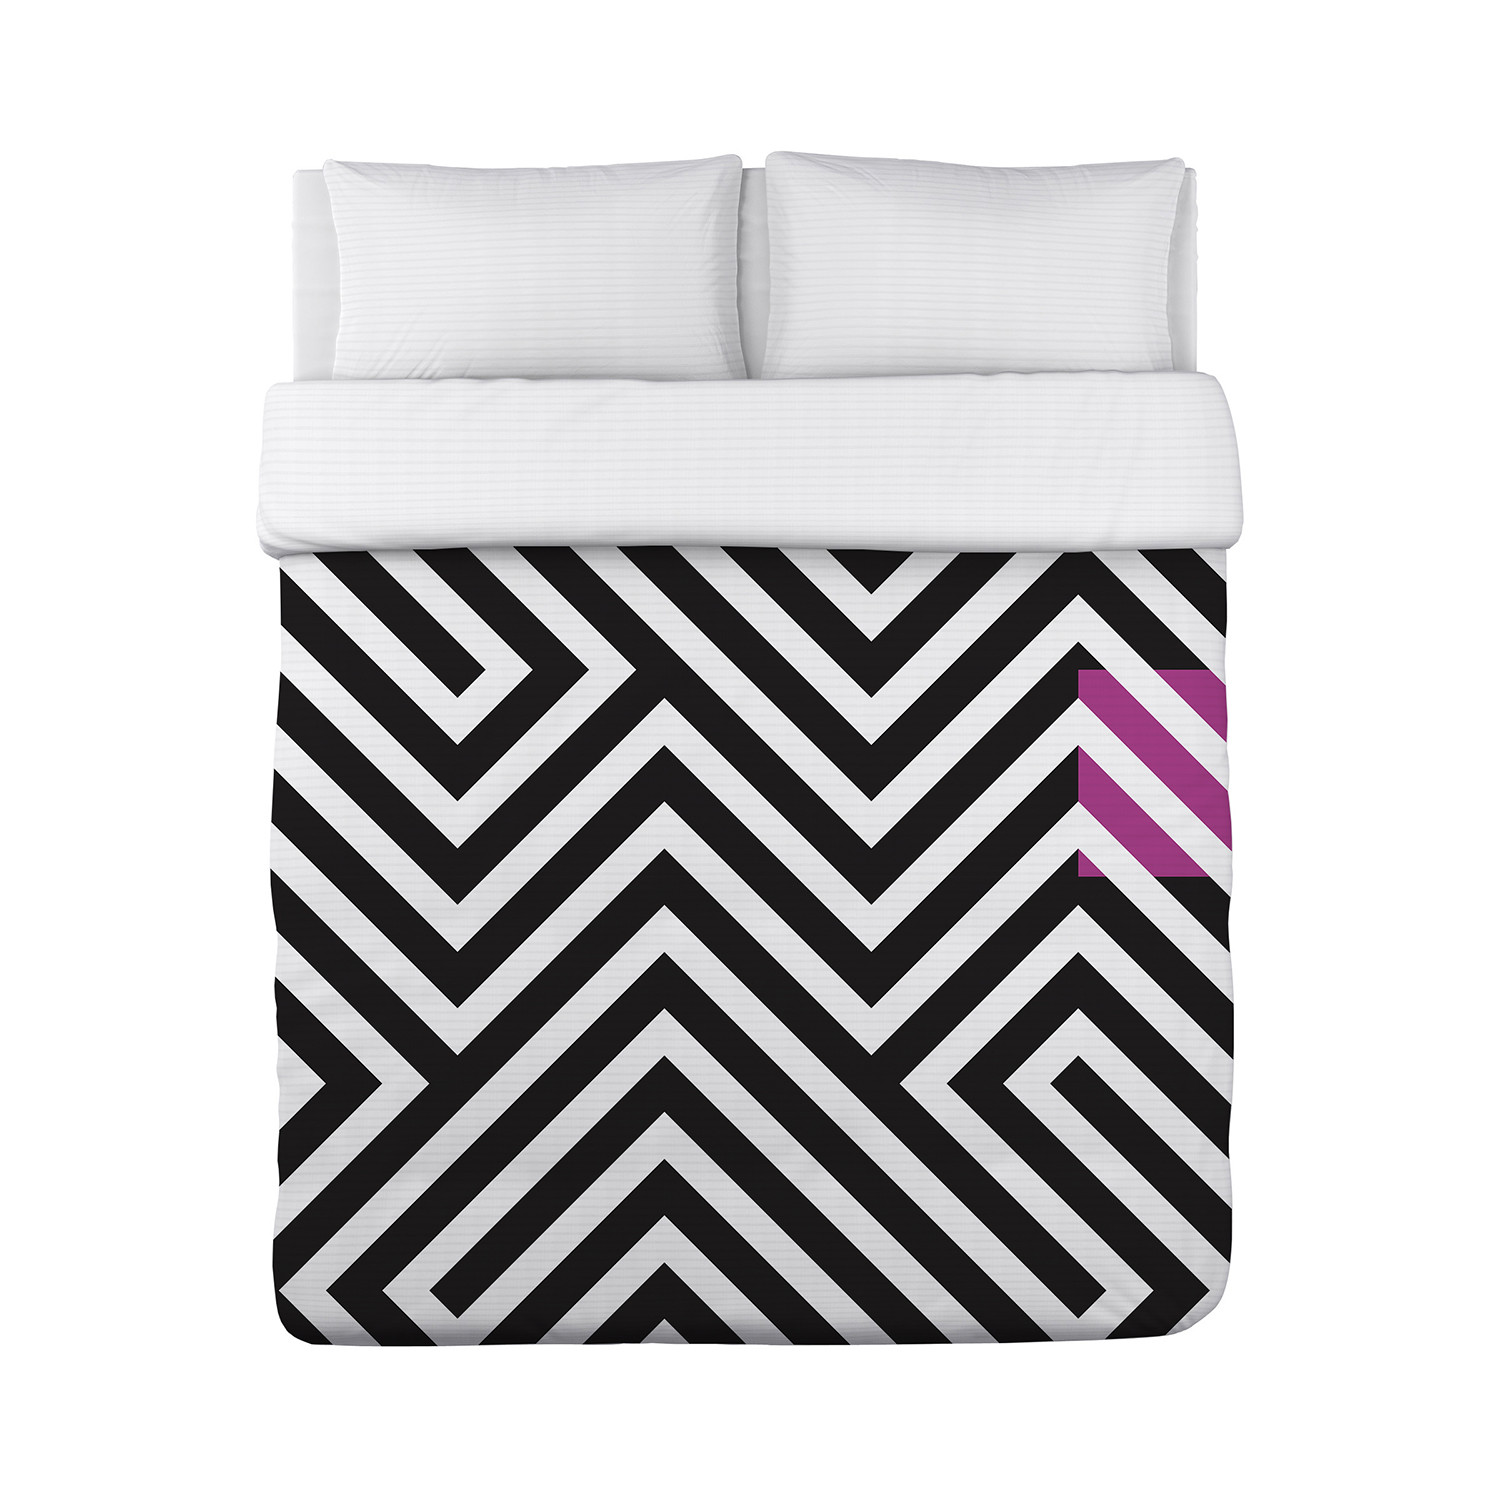 quilt rhombus item in sookie linen set sets pattern home cover king from pillowcase cotton duvet bedding geometric bed